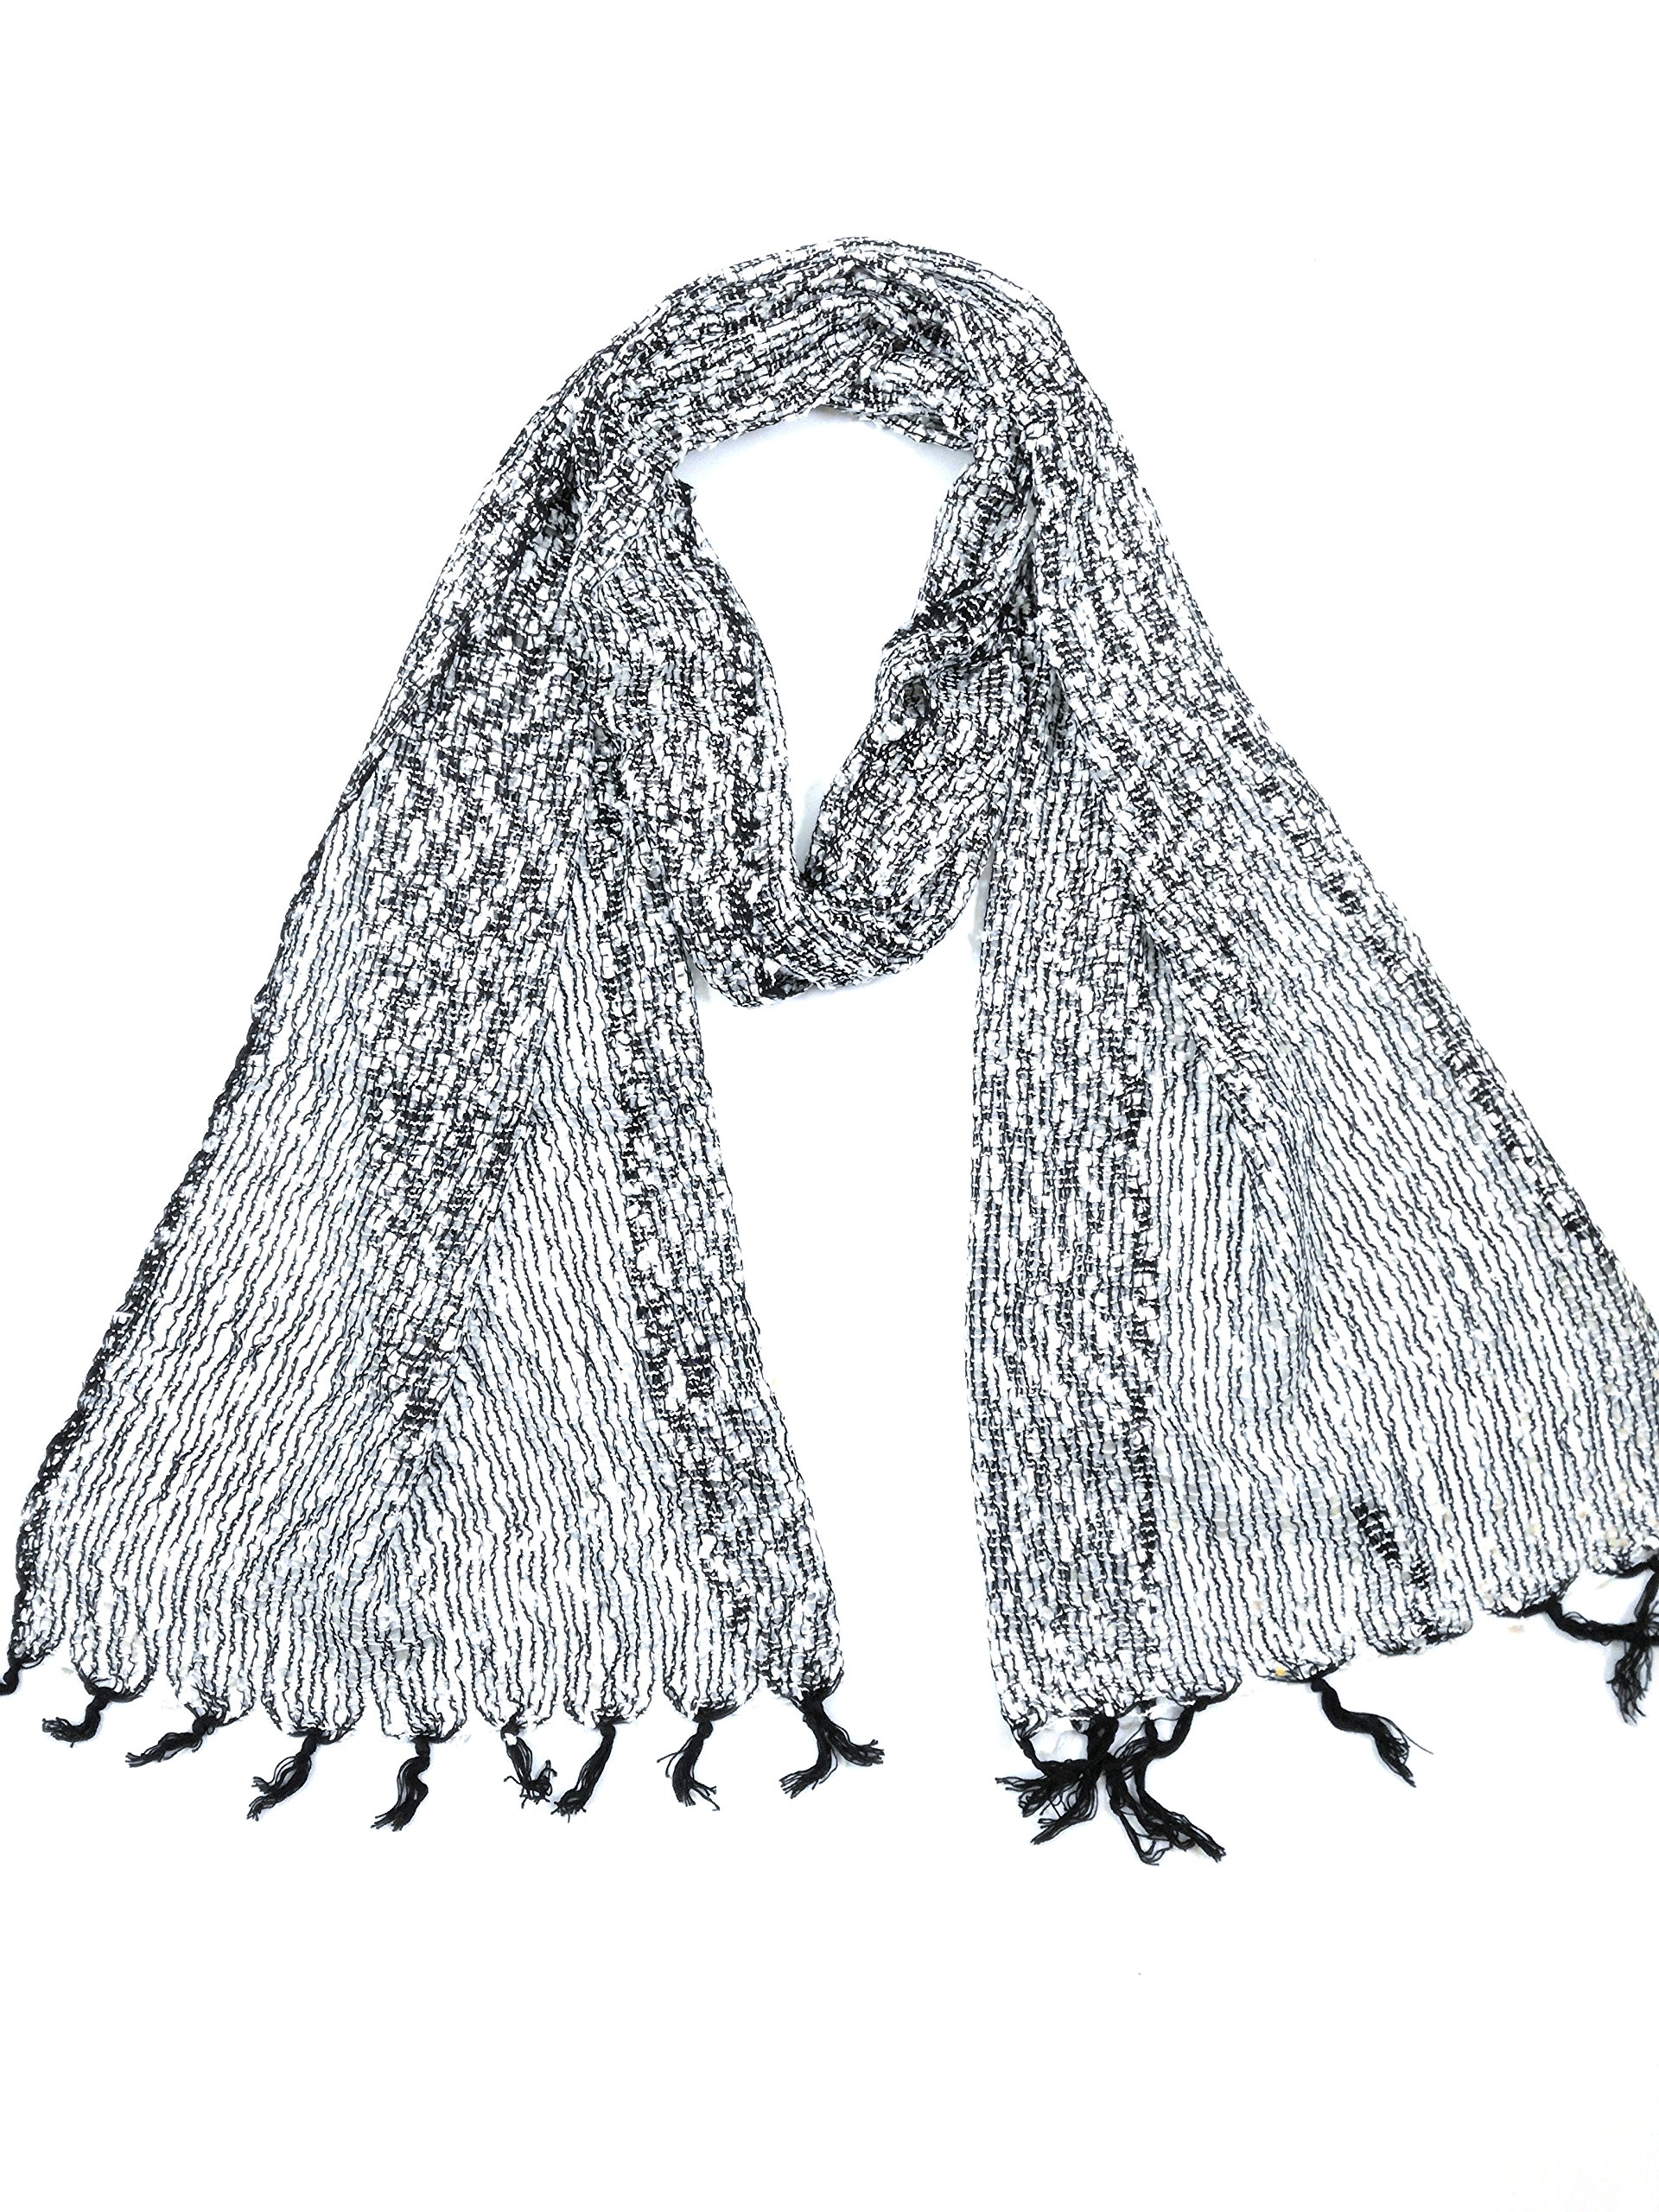 NEW - COOL TRADE WINDS - LIGHT AND DELICATE CONFETTI NET WEAVE SCARF: Hand Loomed in India, a pretty scarf that can be worn for any occasion - 193cm x 33cm in size (Black and White)